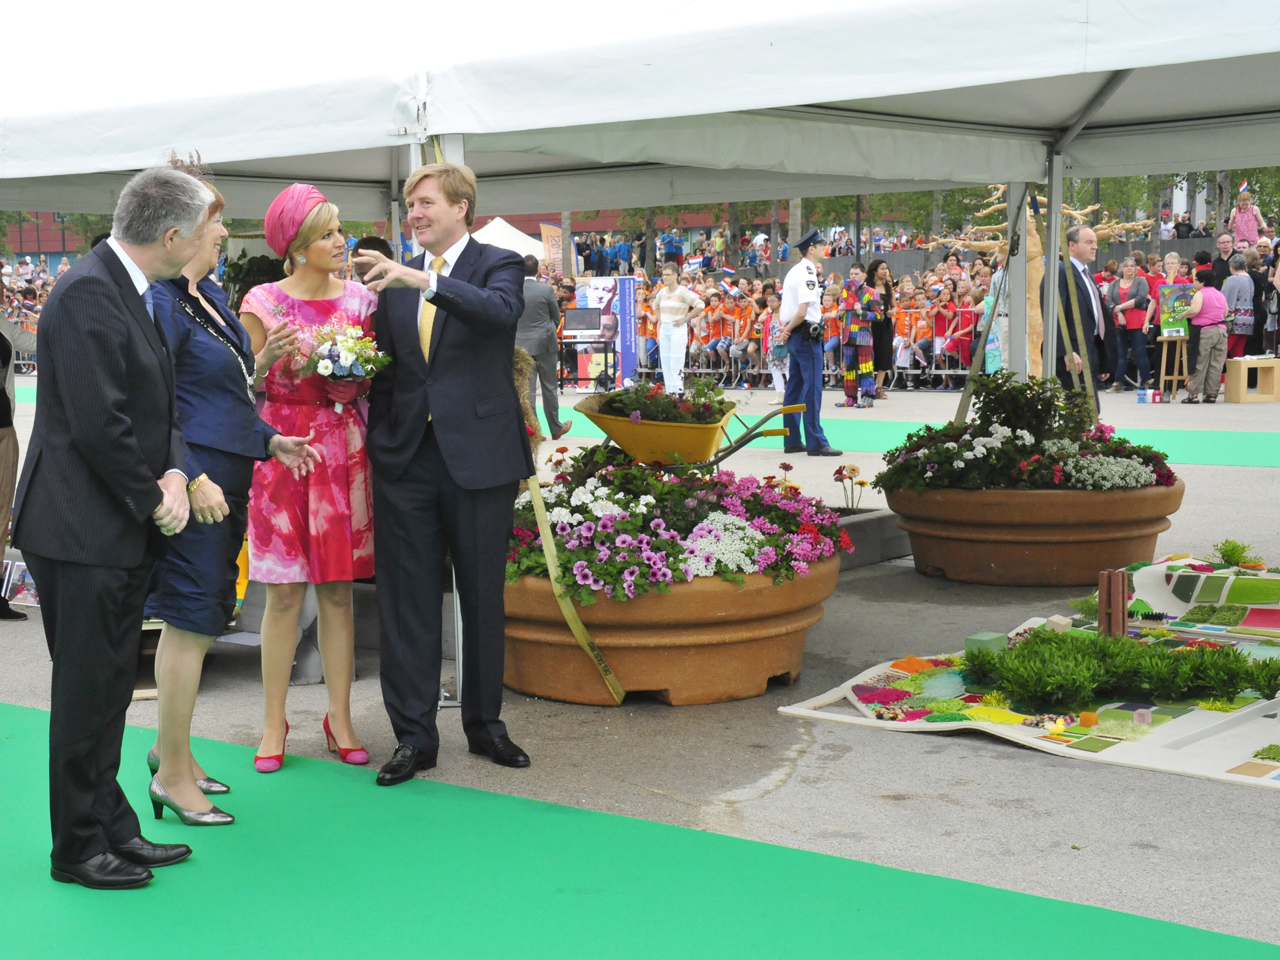 King Willem Alexander and Queen Maxima visit Almere FLORIADE